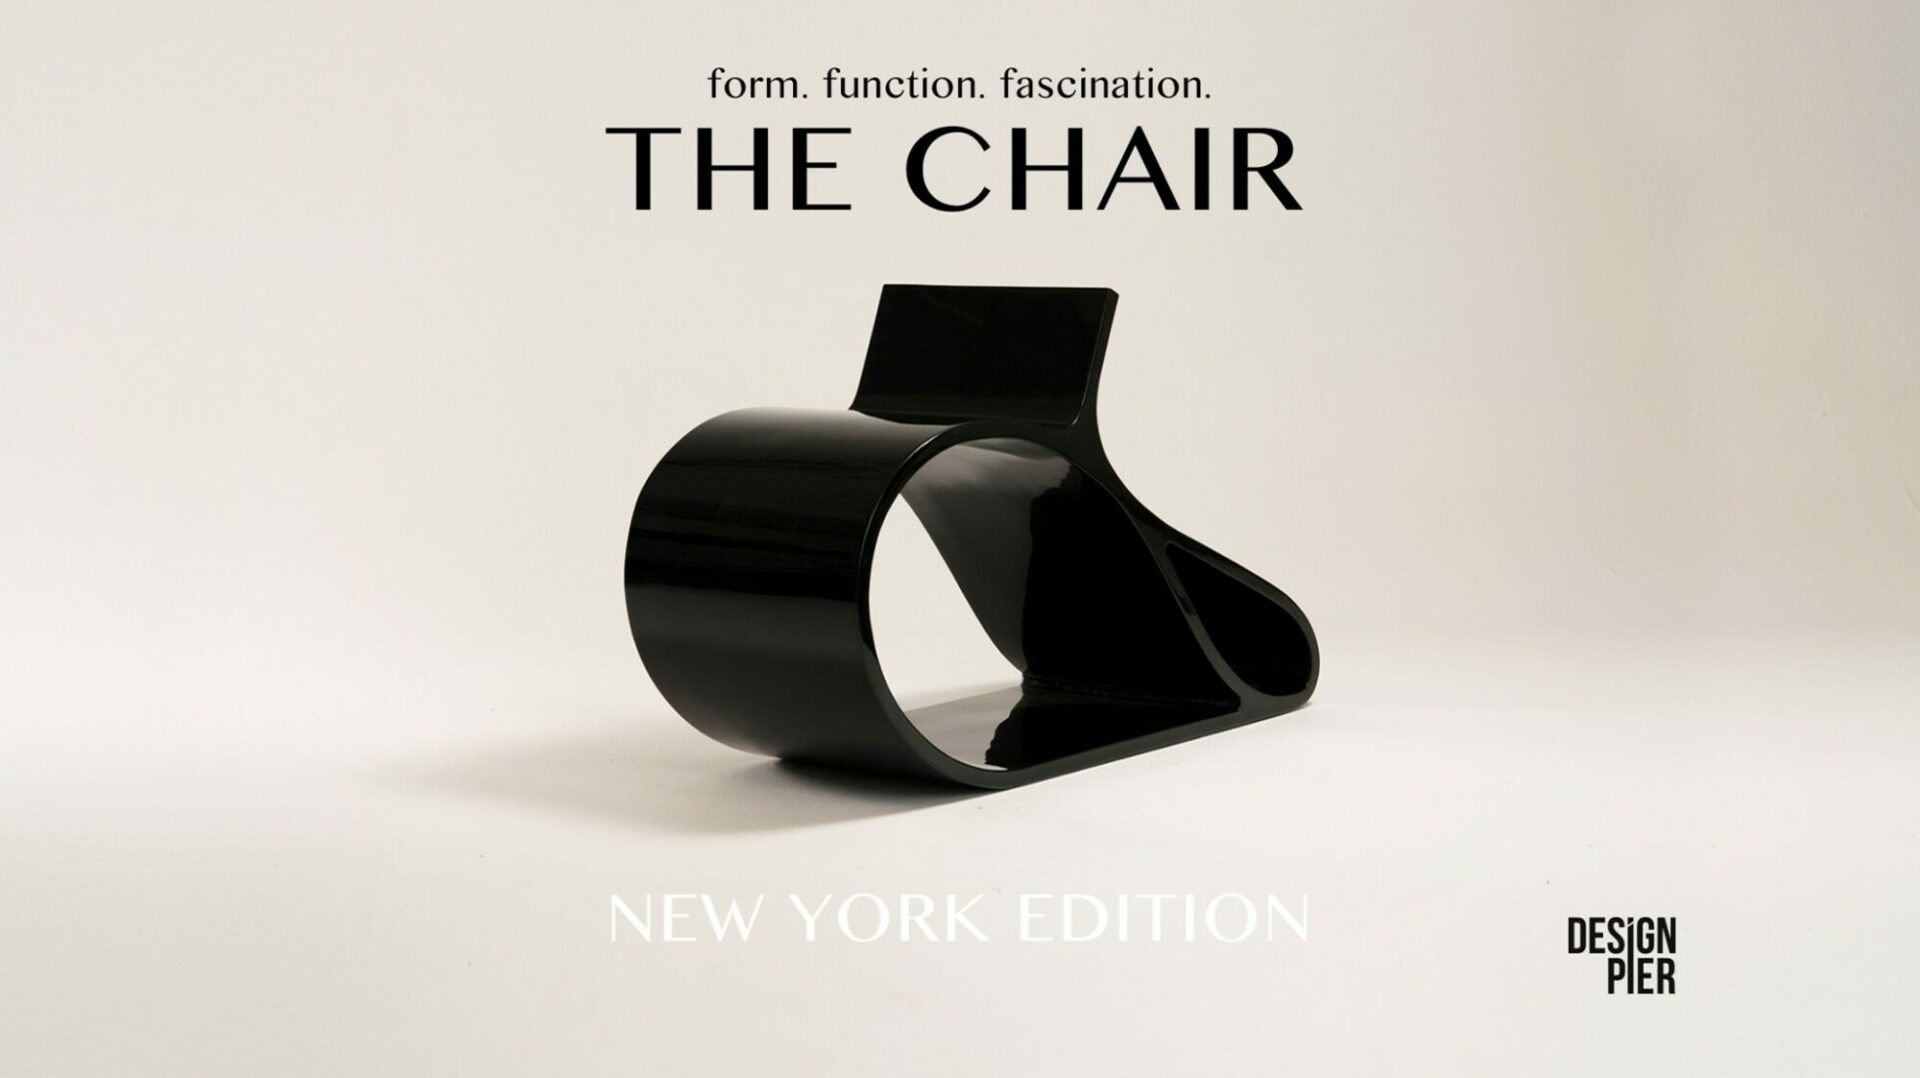 Design Pier / THE CHAIR: form, function, fascination